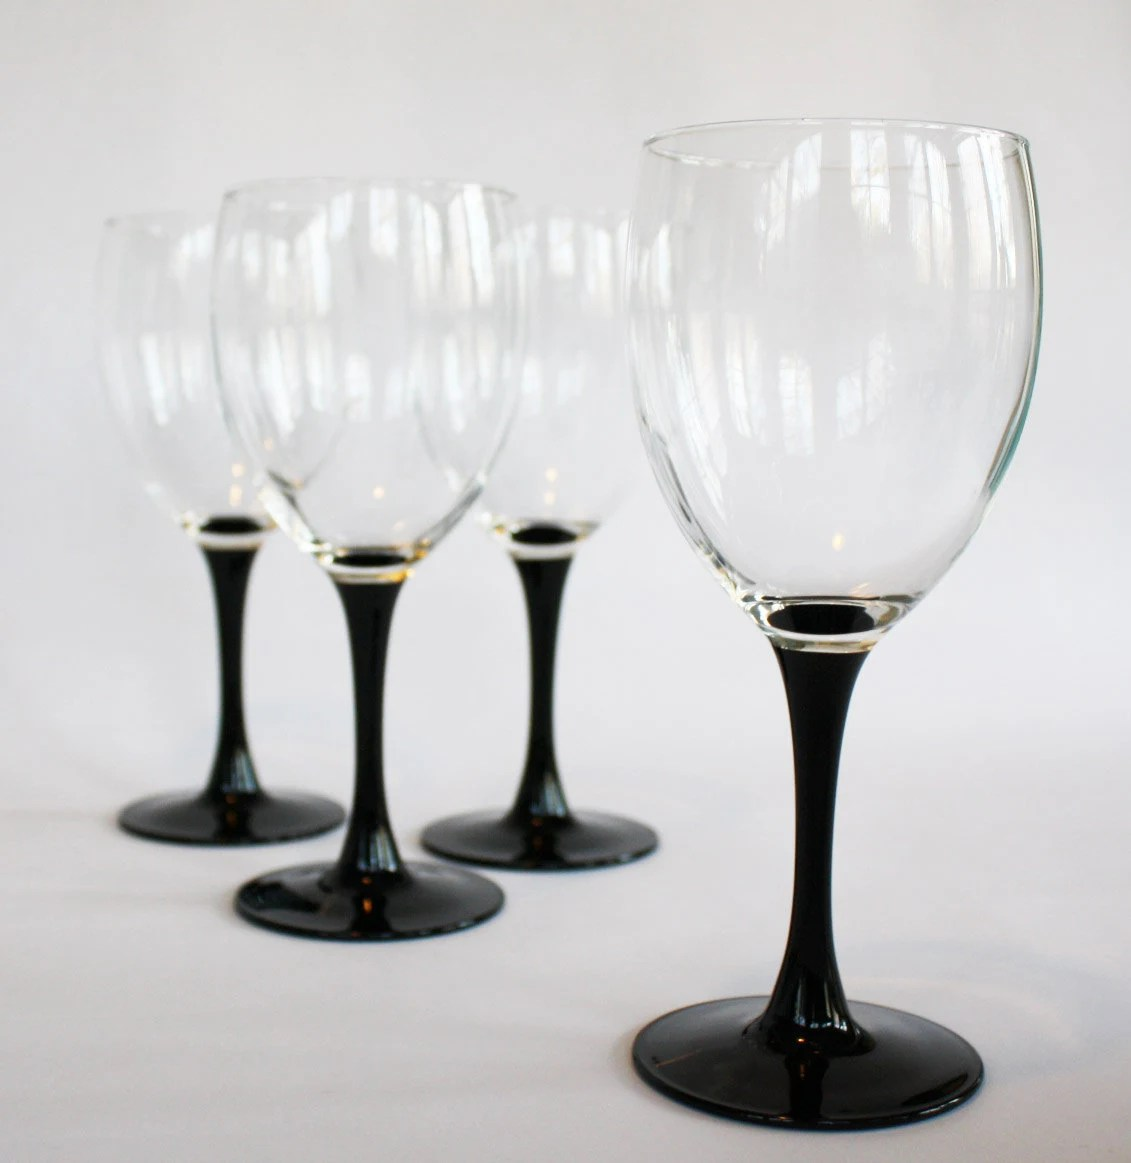 Wine Glasses With Black Stems Vintage Wine Glasses Set Of Four With Black Stem